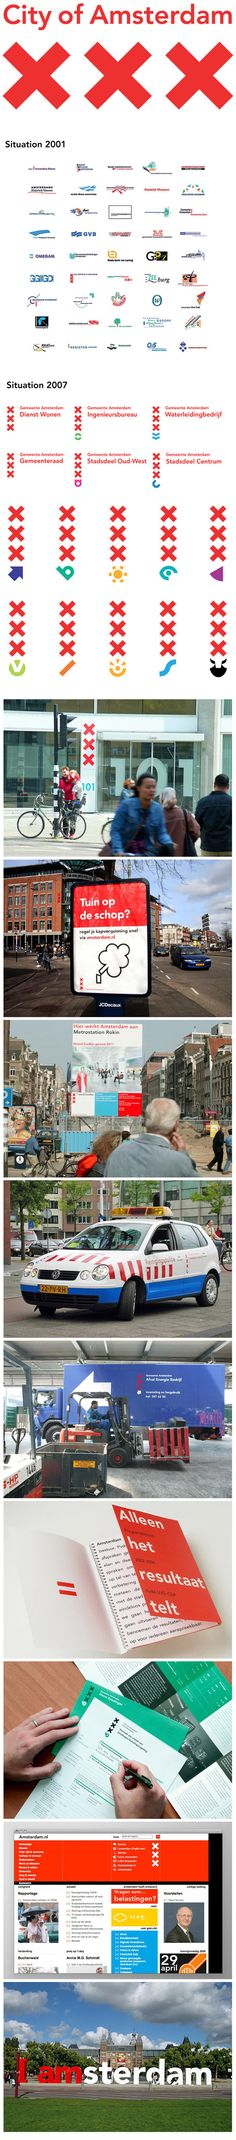 City of Amsterdam Identity / Edenspiekermann with Thonik design bureau. The Amsterdam style was awarded the Dutch House Style Award in 2003.